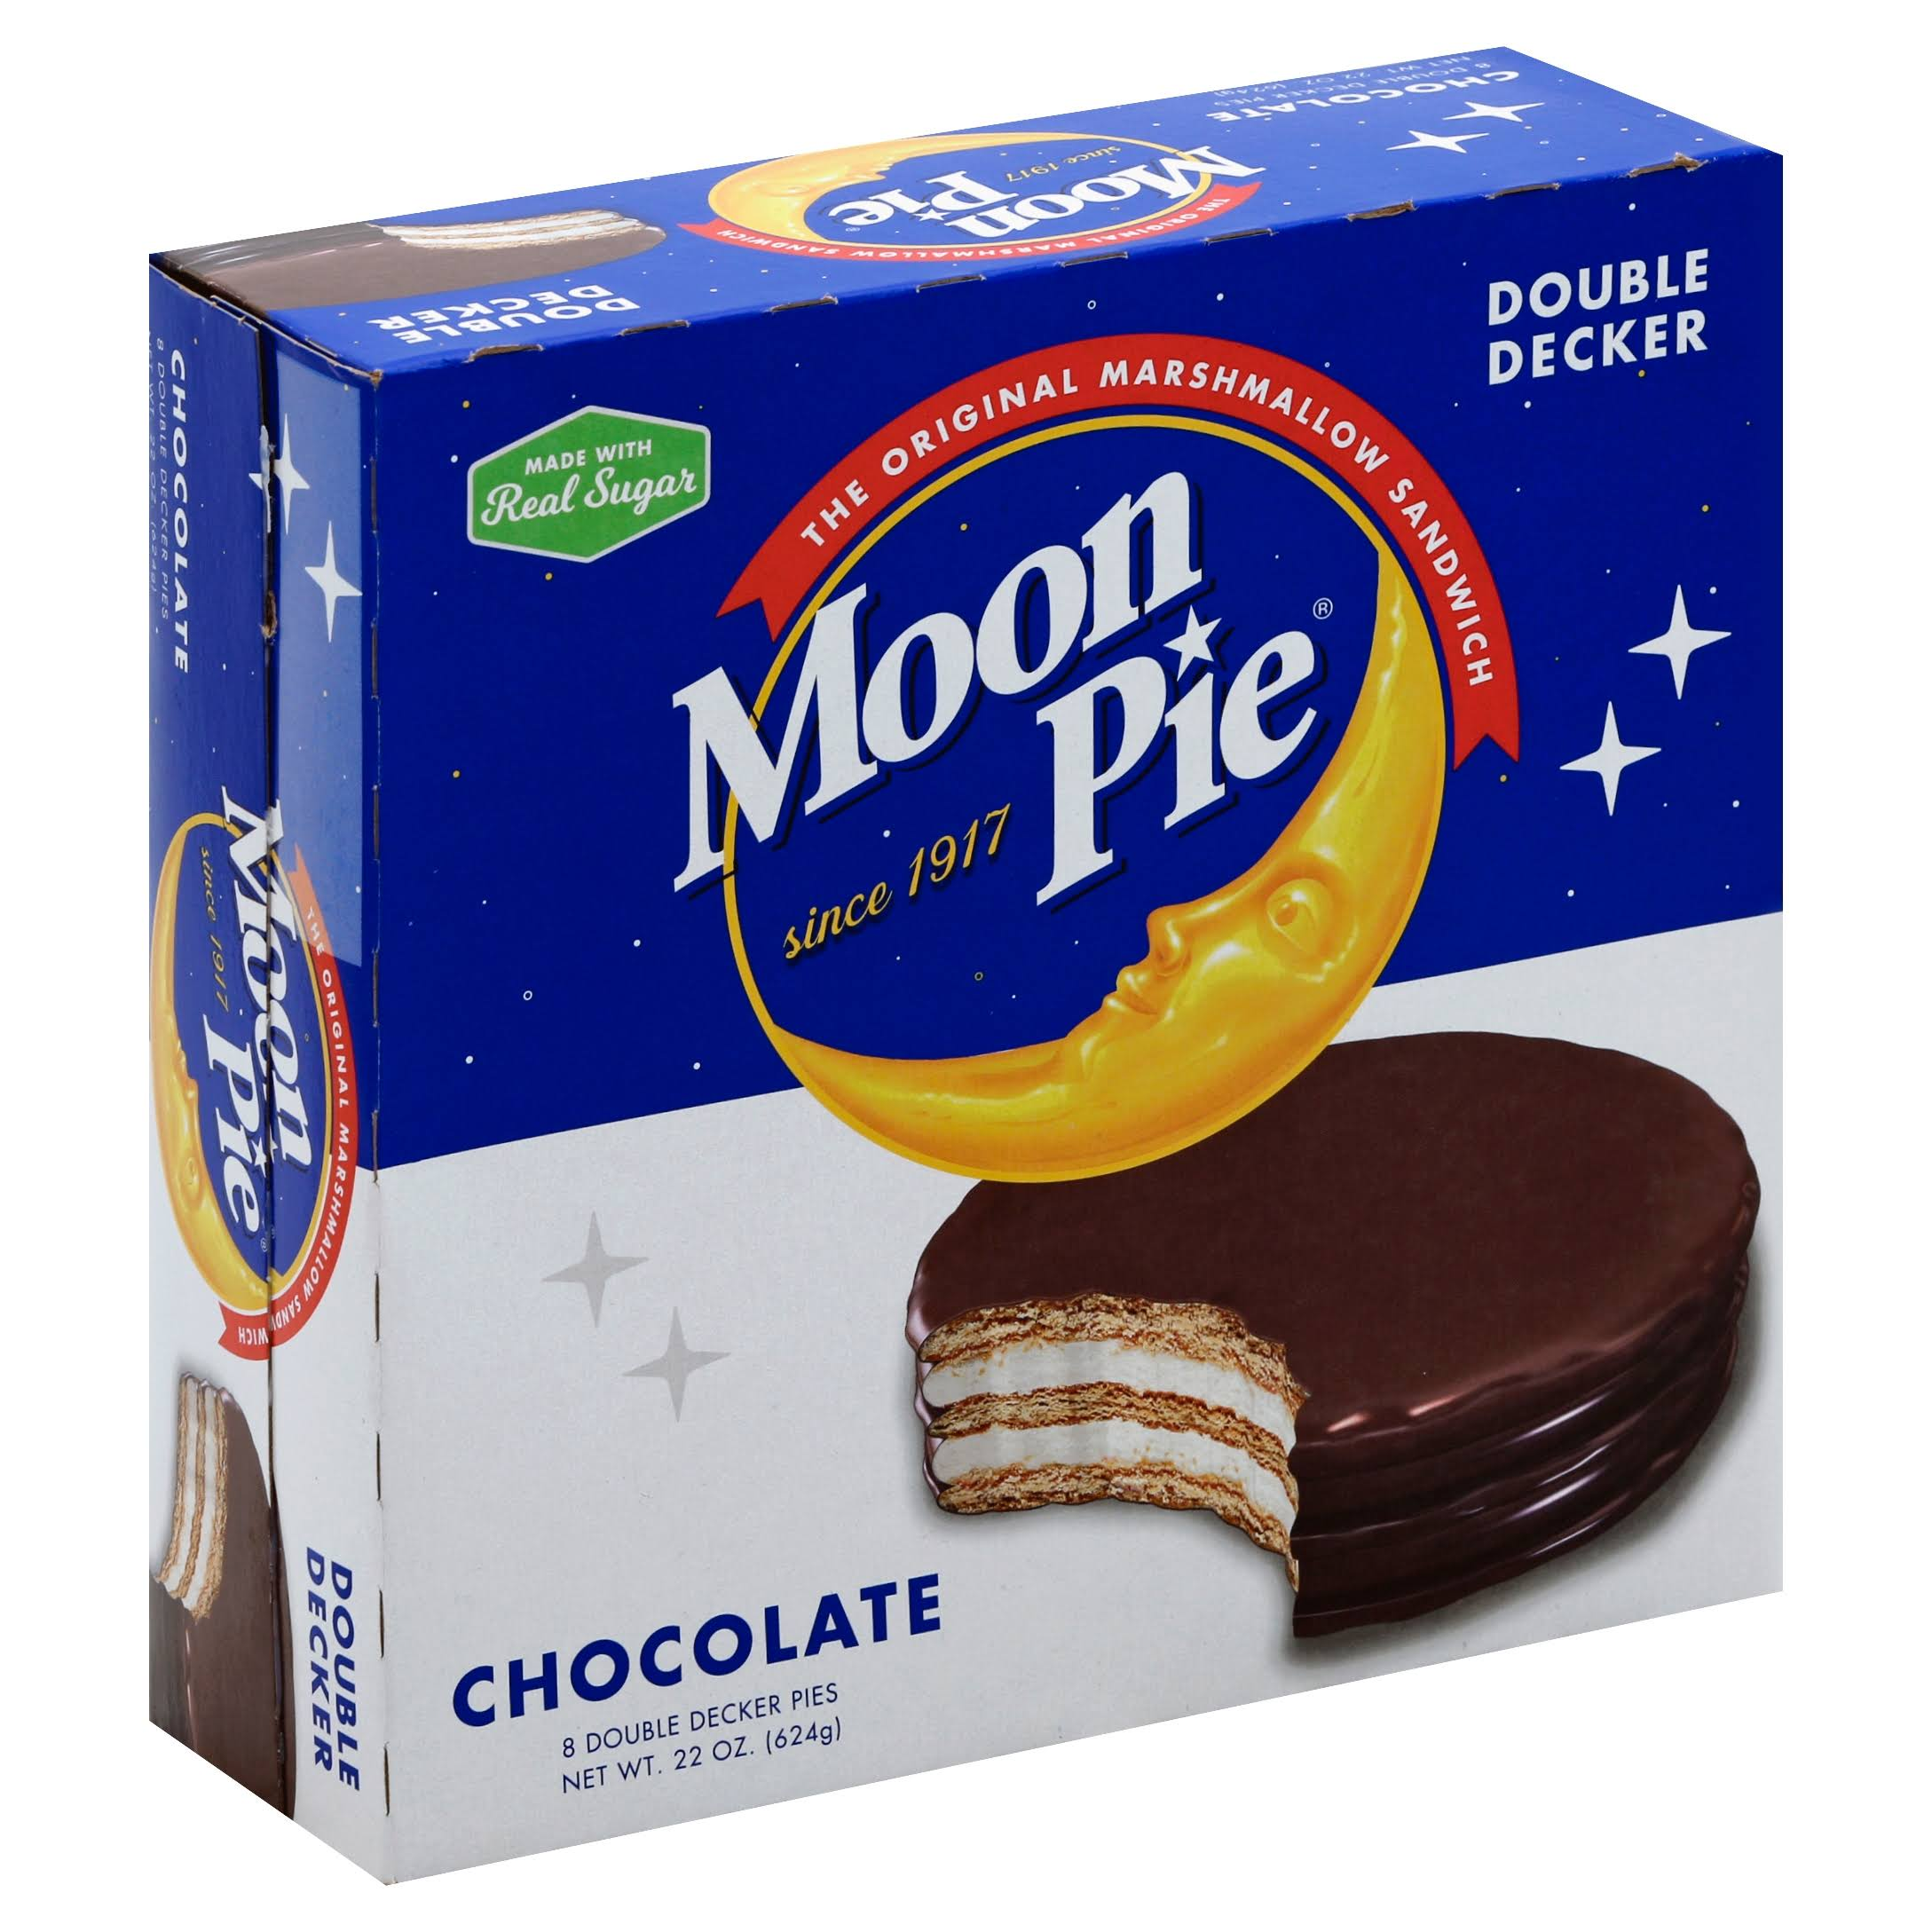 Moon Pie Moon Pie, Chocolate, Double Decker - 8 pack, 22 oz